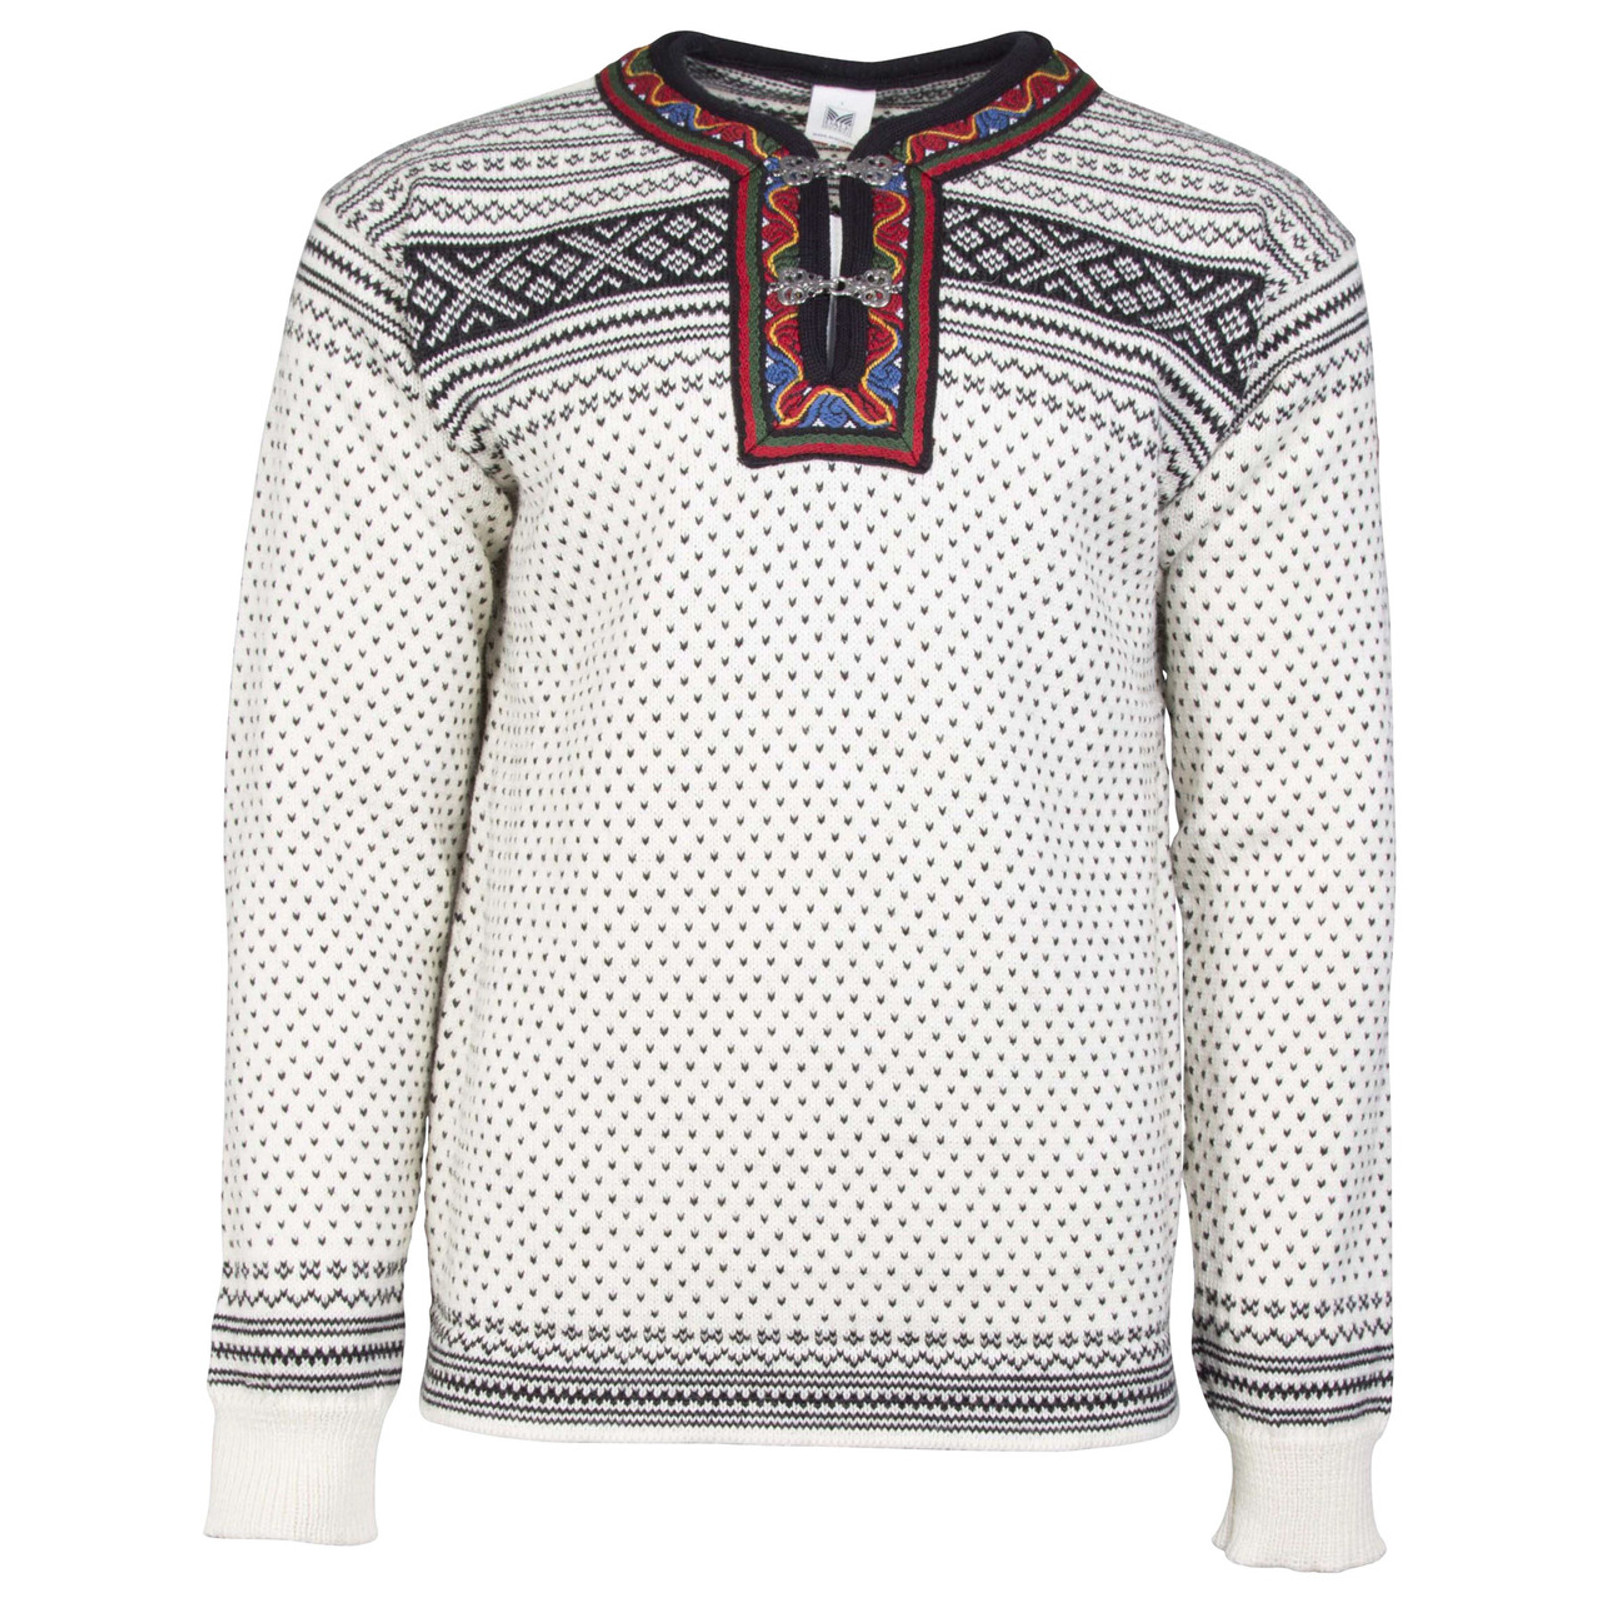 Dale of Norway New Setesdal Pullover - Off White/Black, 93781-A